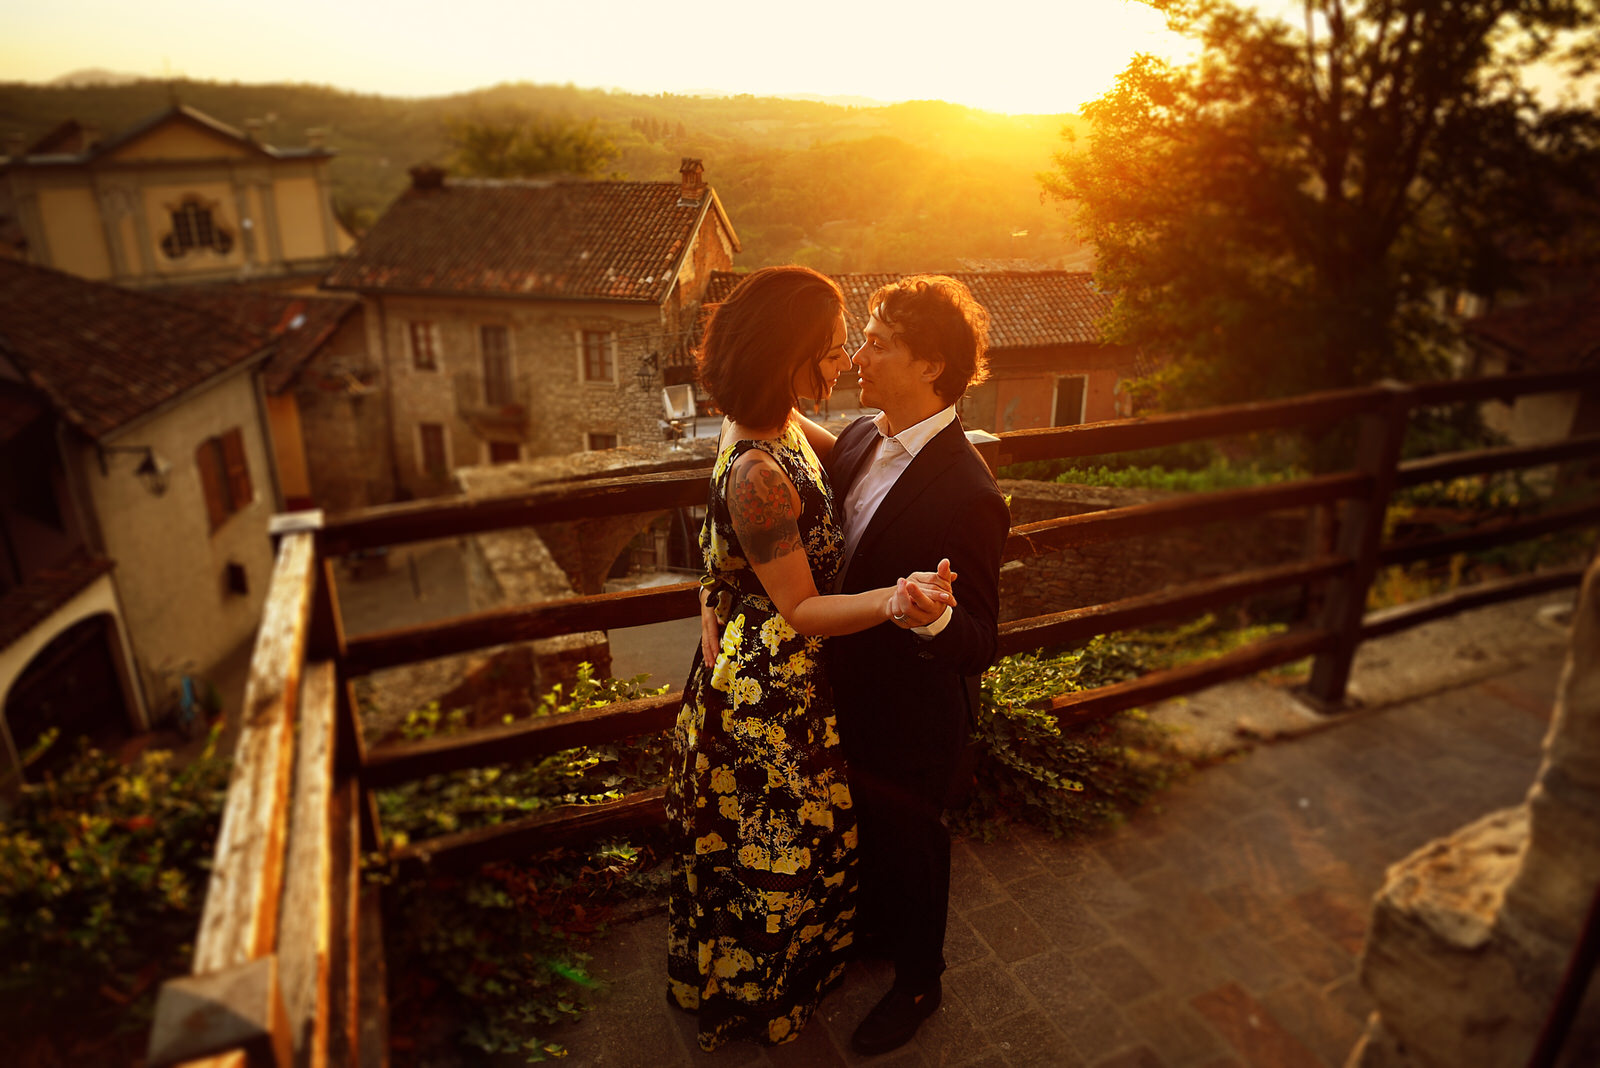 Castello di Trisobbio Engagement Session in Italy by Martina Campolo Photography